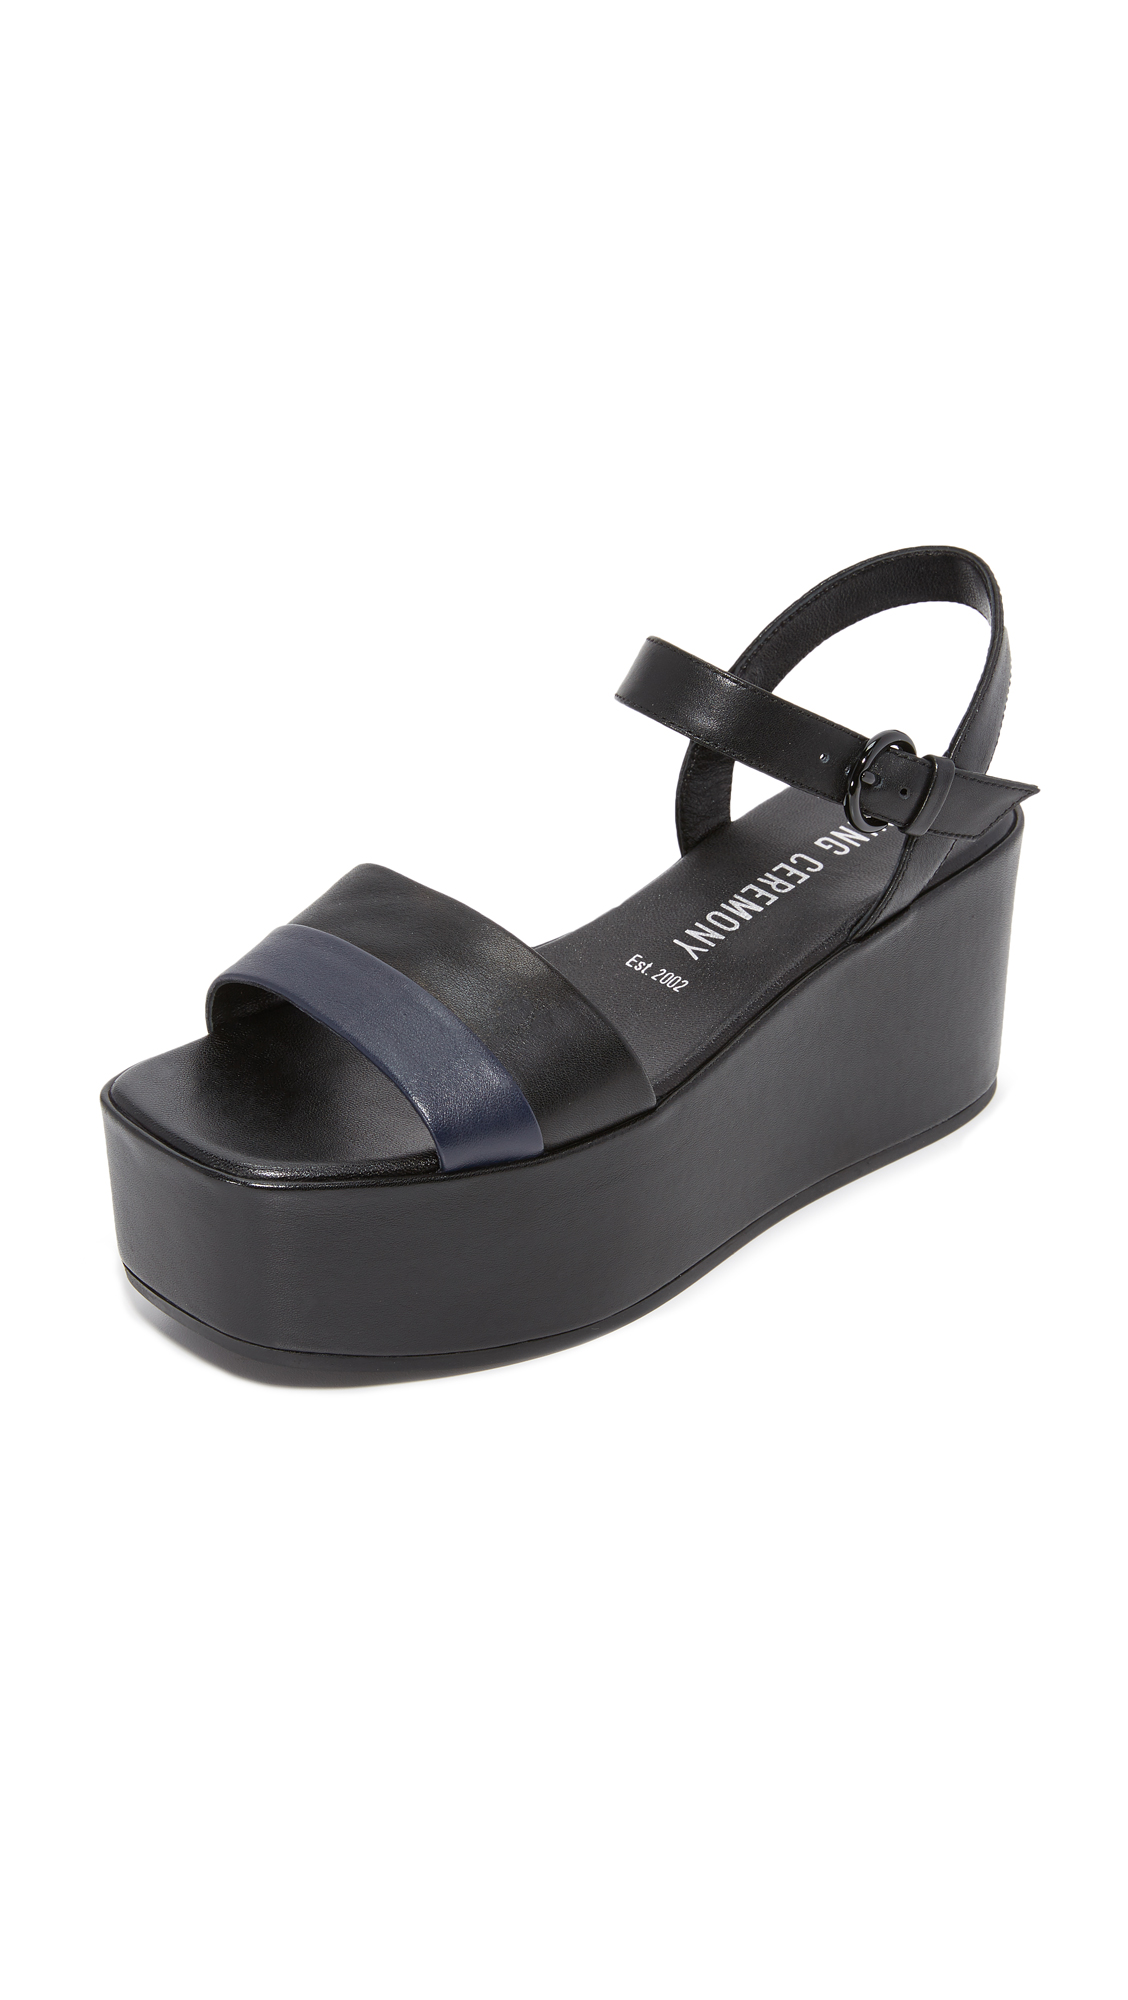 Photo of Opening Ceremony Rihta Platform Sandals Black Multi - Opening Ceremony online